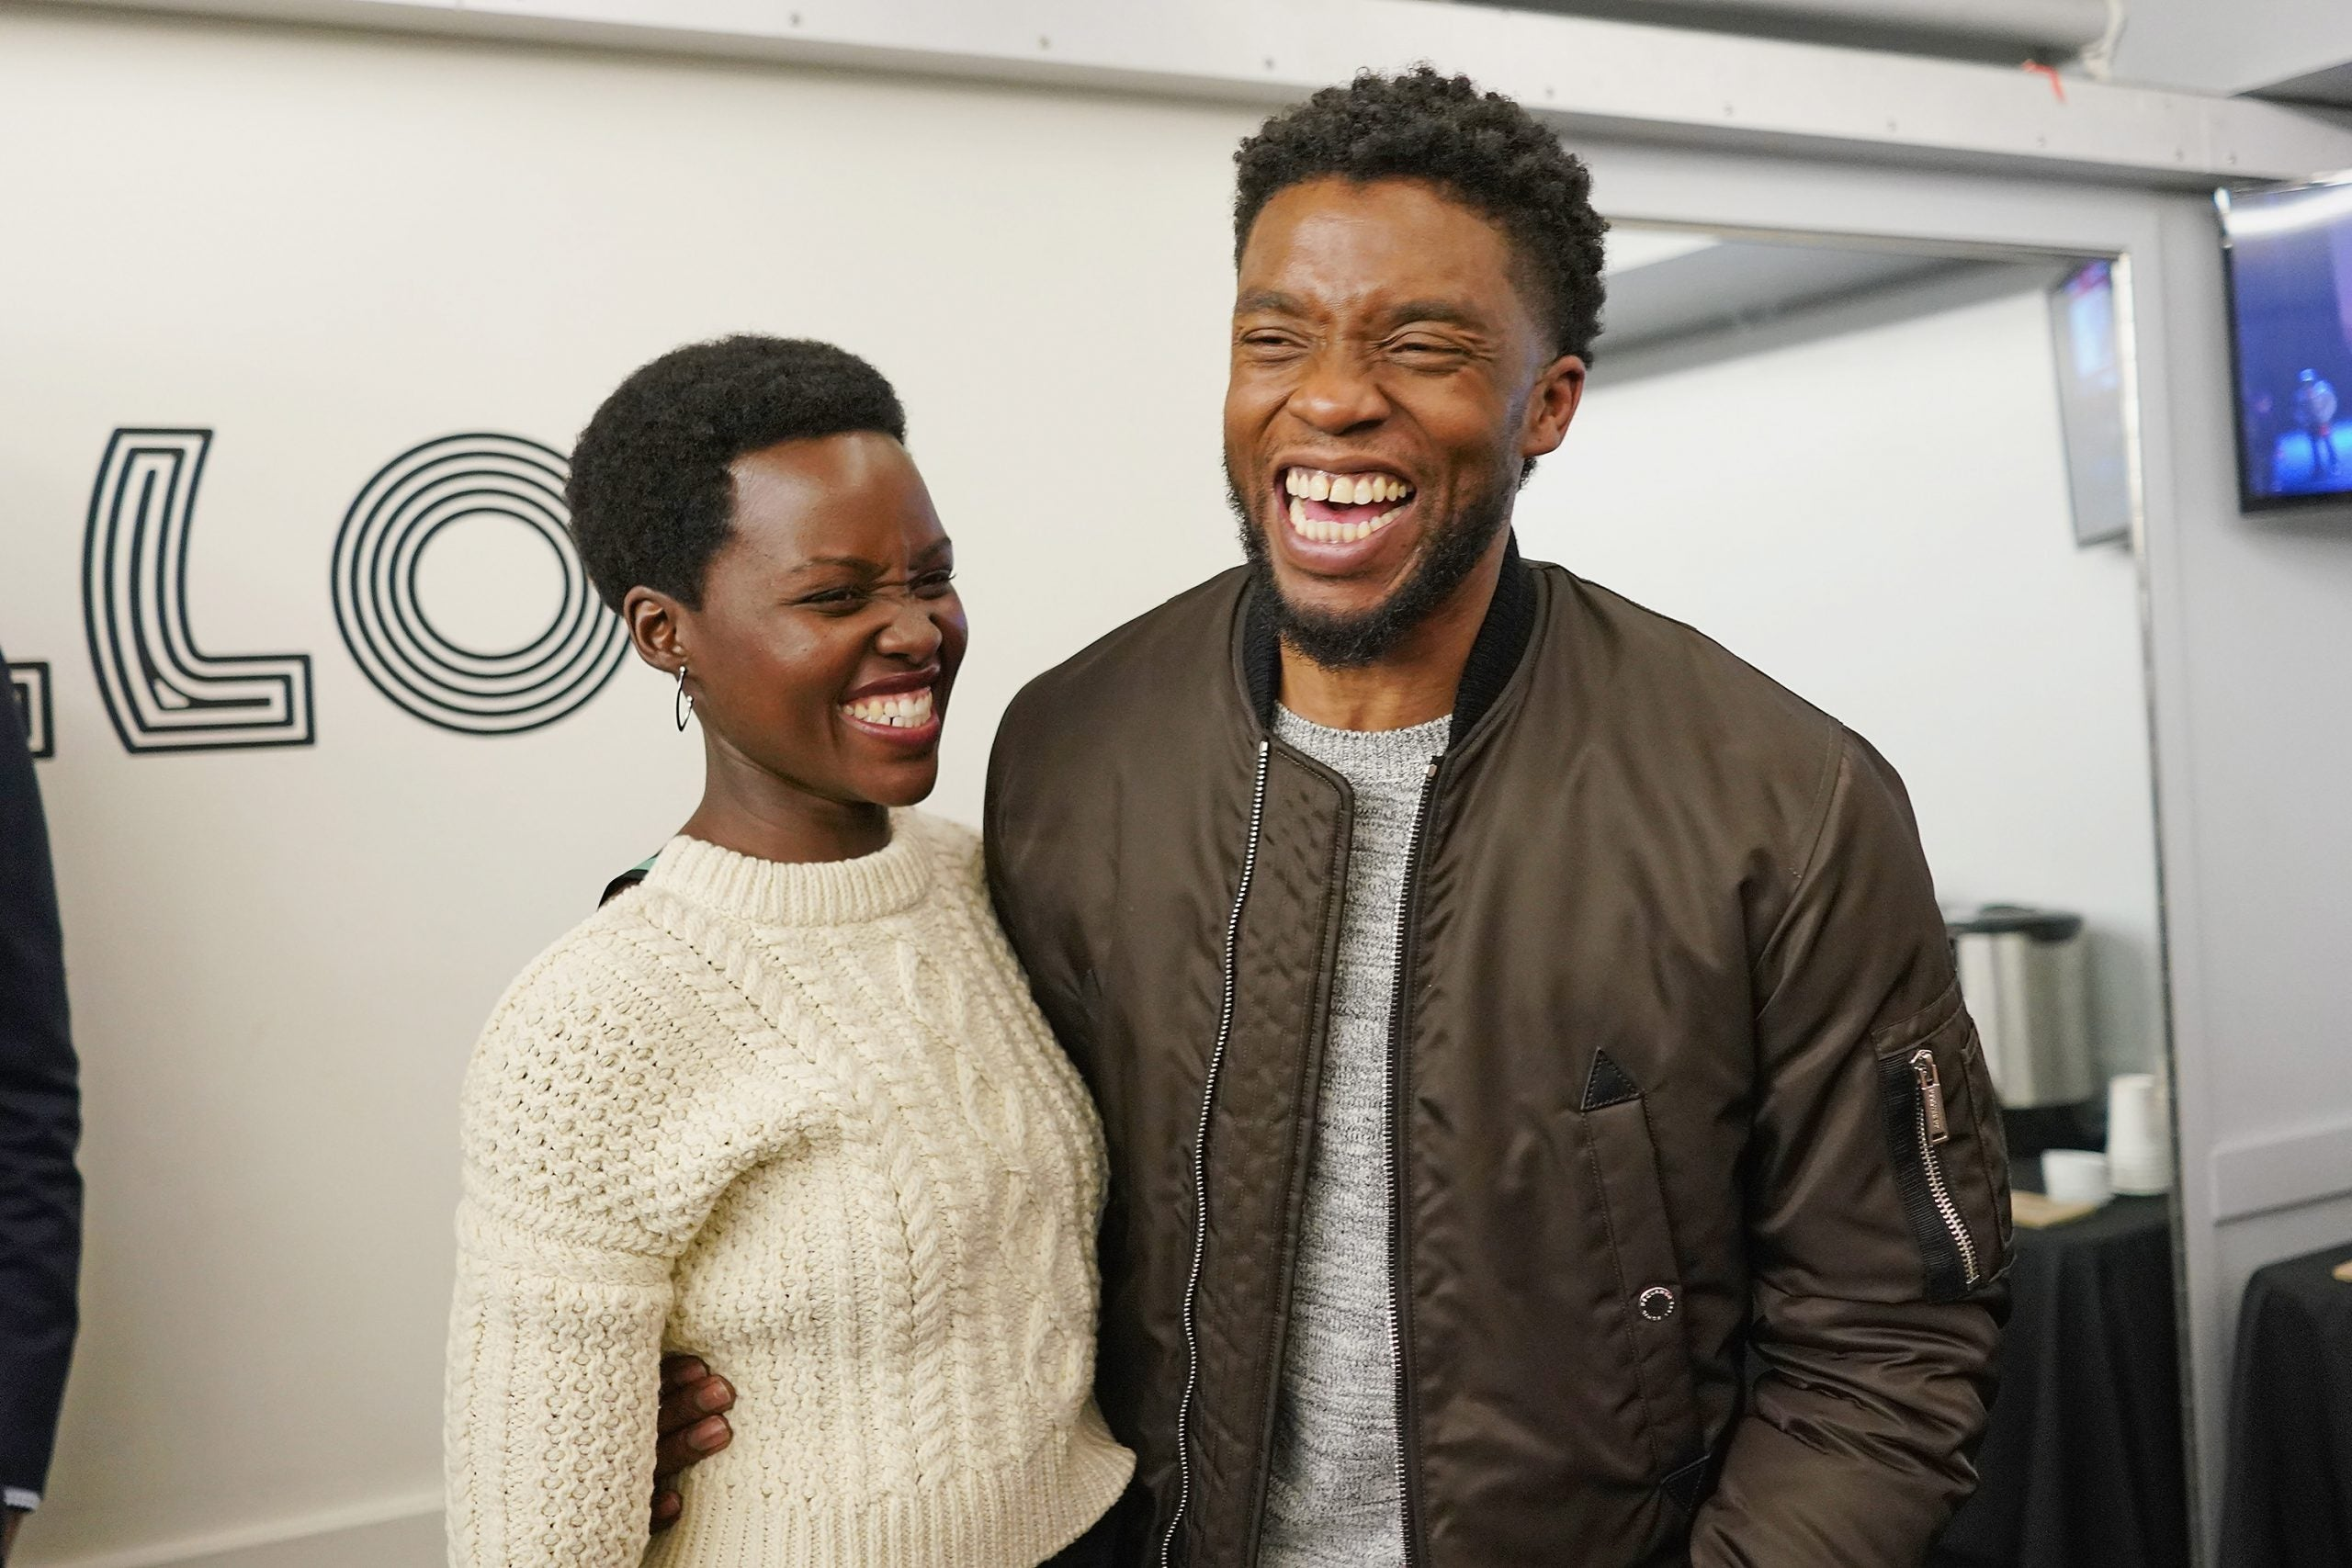 Lupita Nyong'o Describes Loss Of Chadwick Boseman As 'A Punch To The Gut'